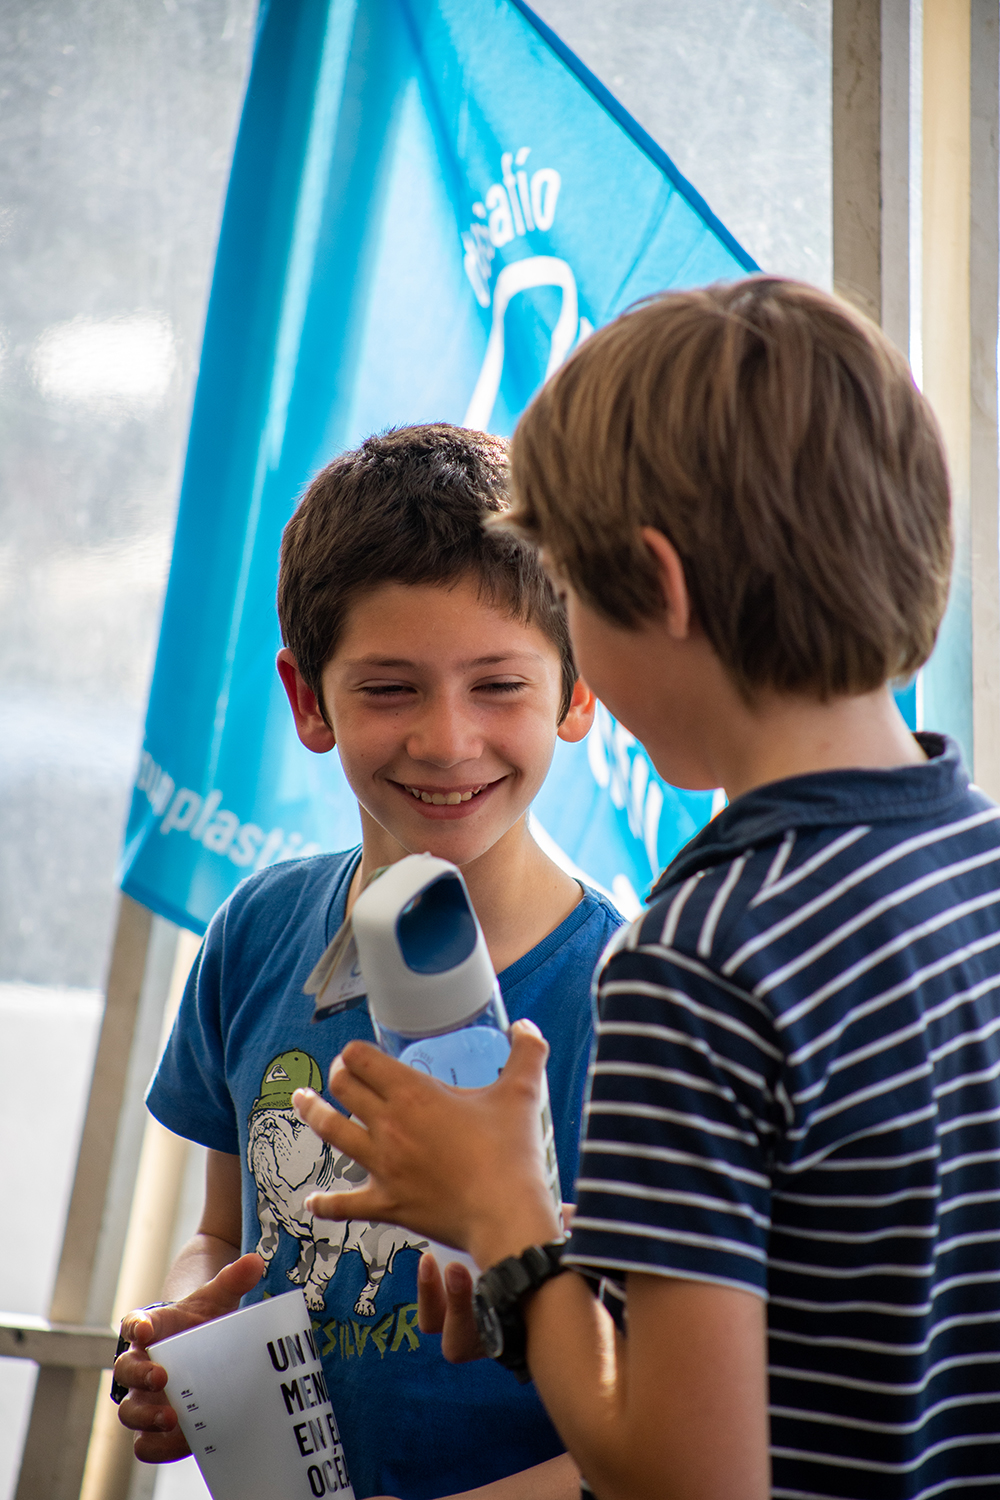 Sailors encourage eachother to bring reusable water bottles to their sailing centers. Photo credit: Unplastify